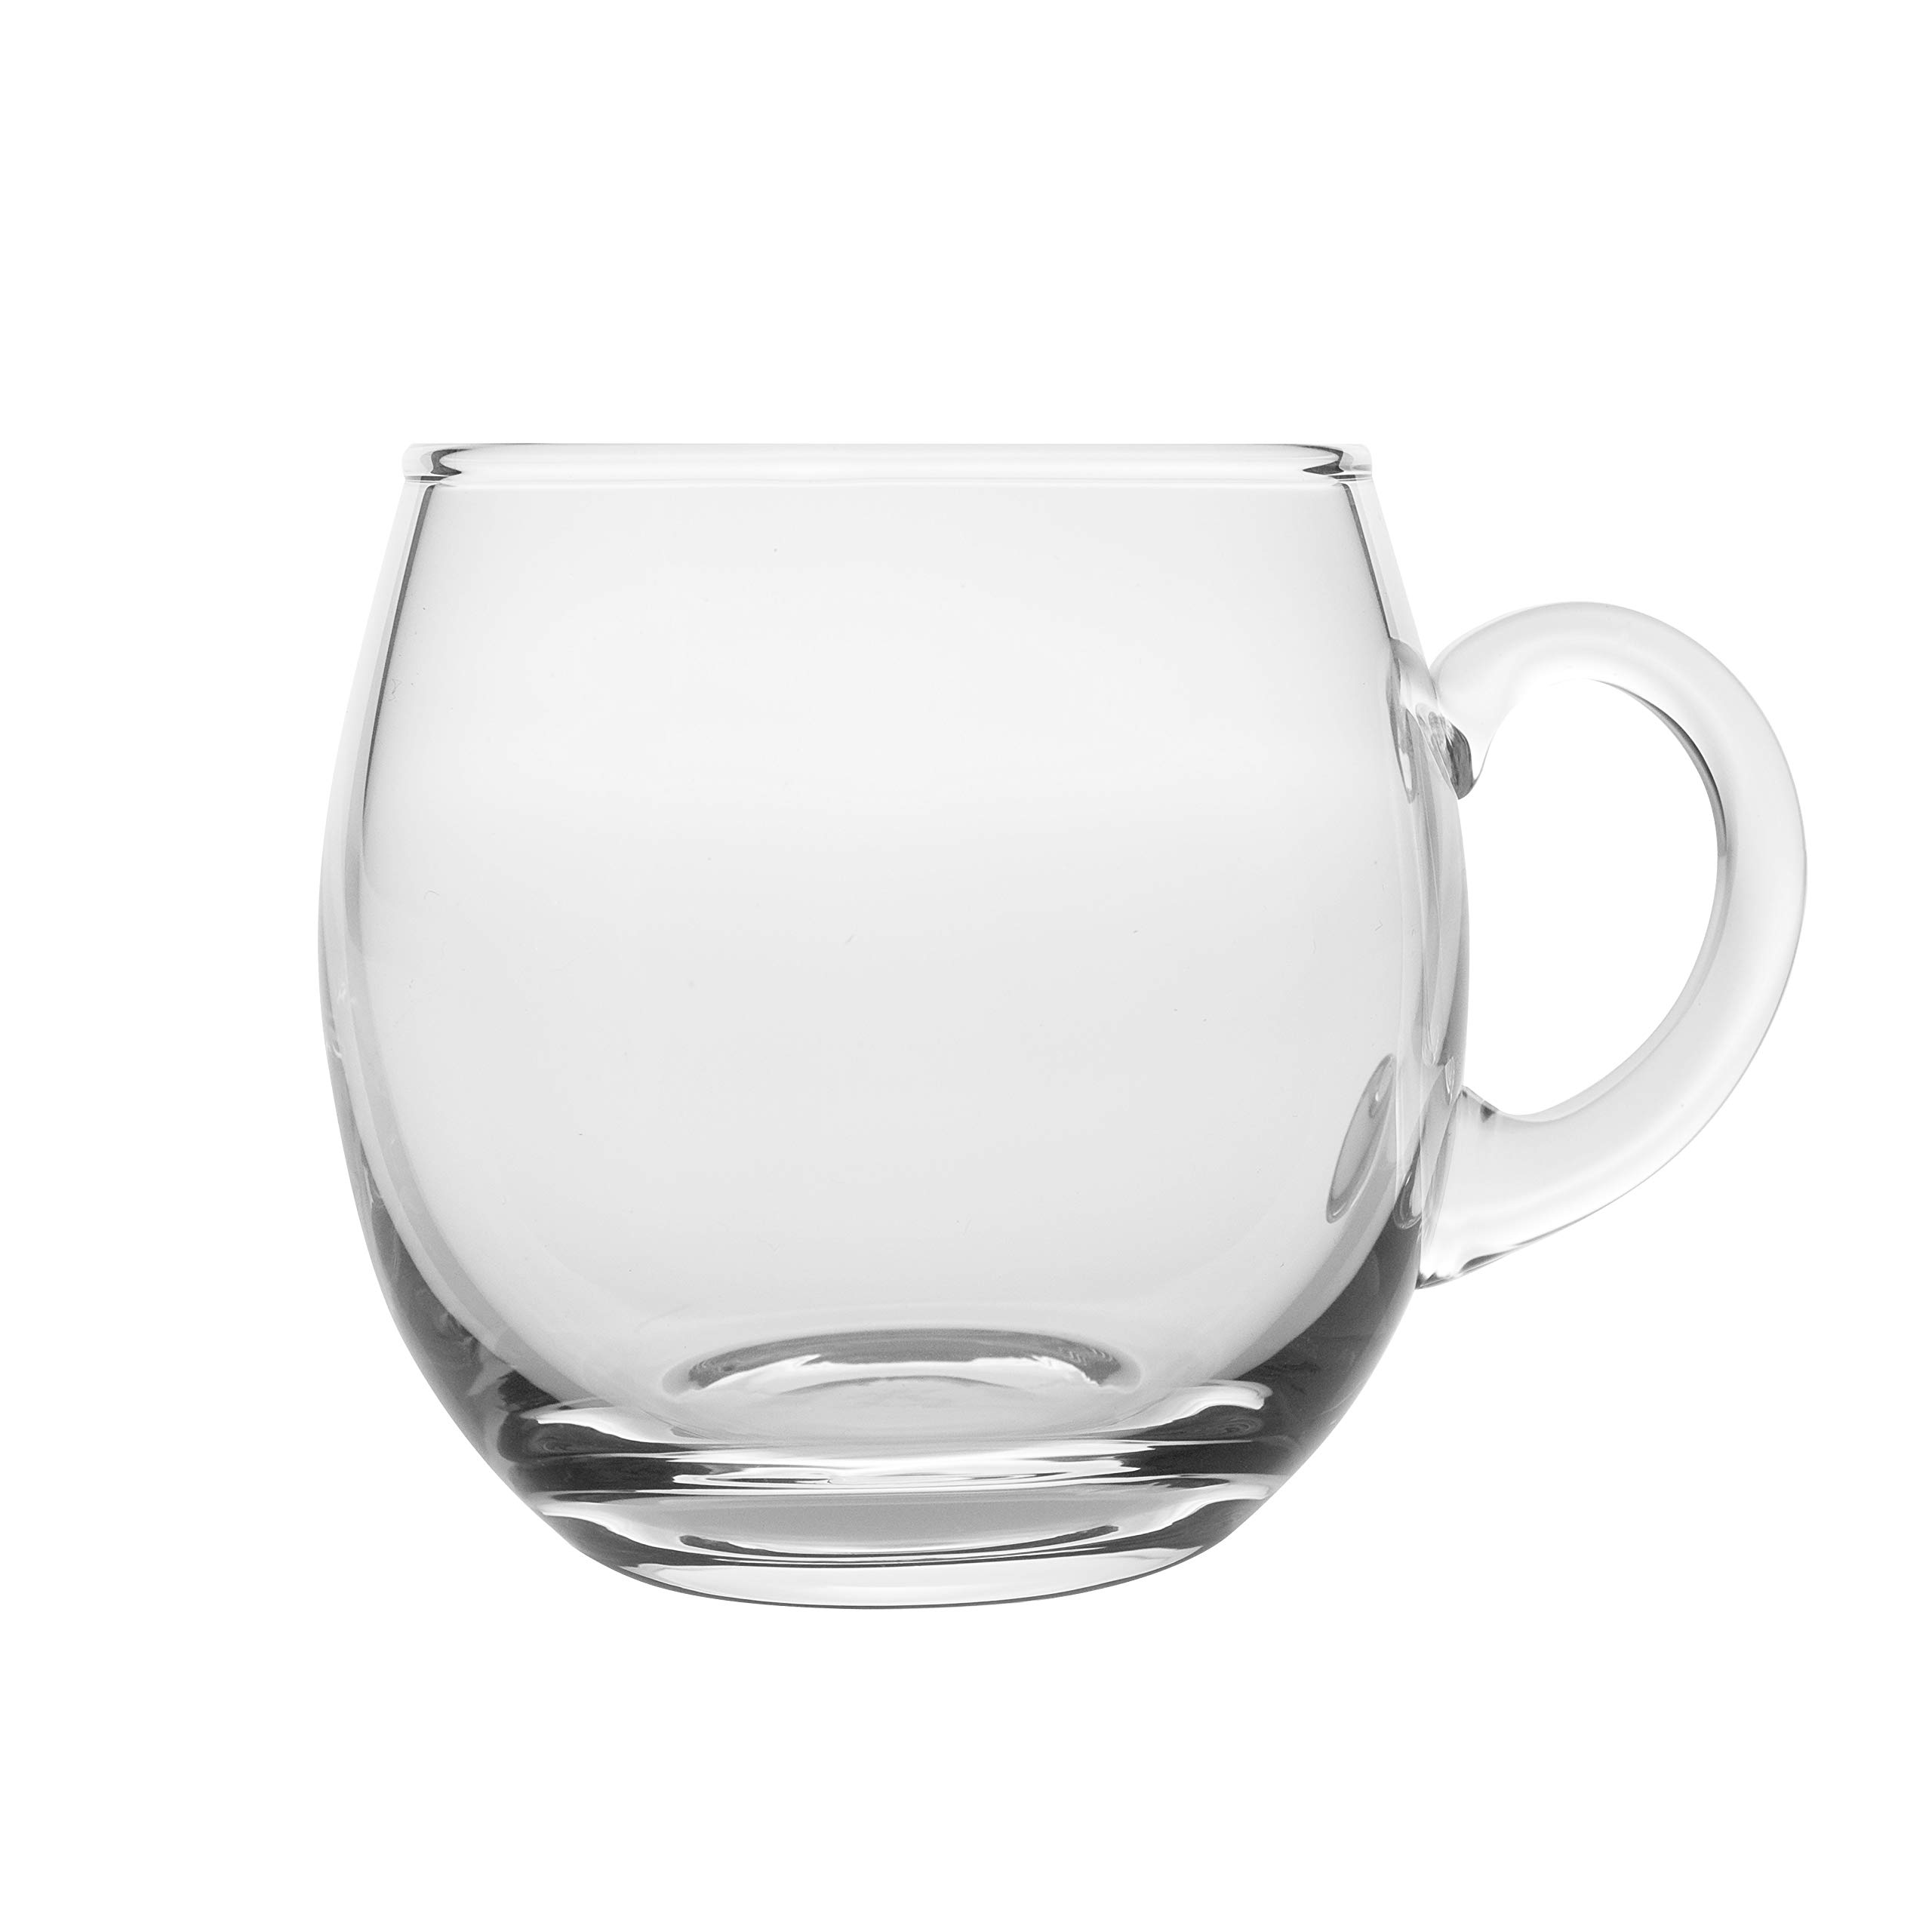 Barski - European Quality - Handmade Glass - Set of 4 - Punch Cups With Handle - Each Cup is 12 oz. - Glasses Are Made Made in Europe